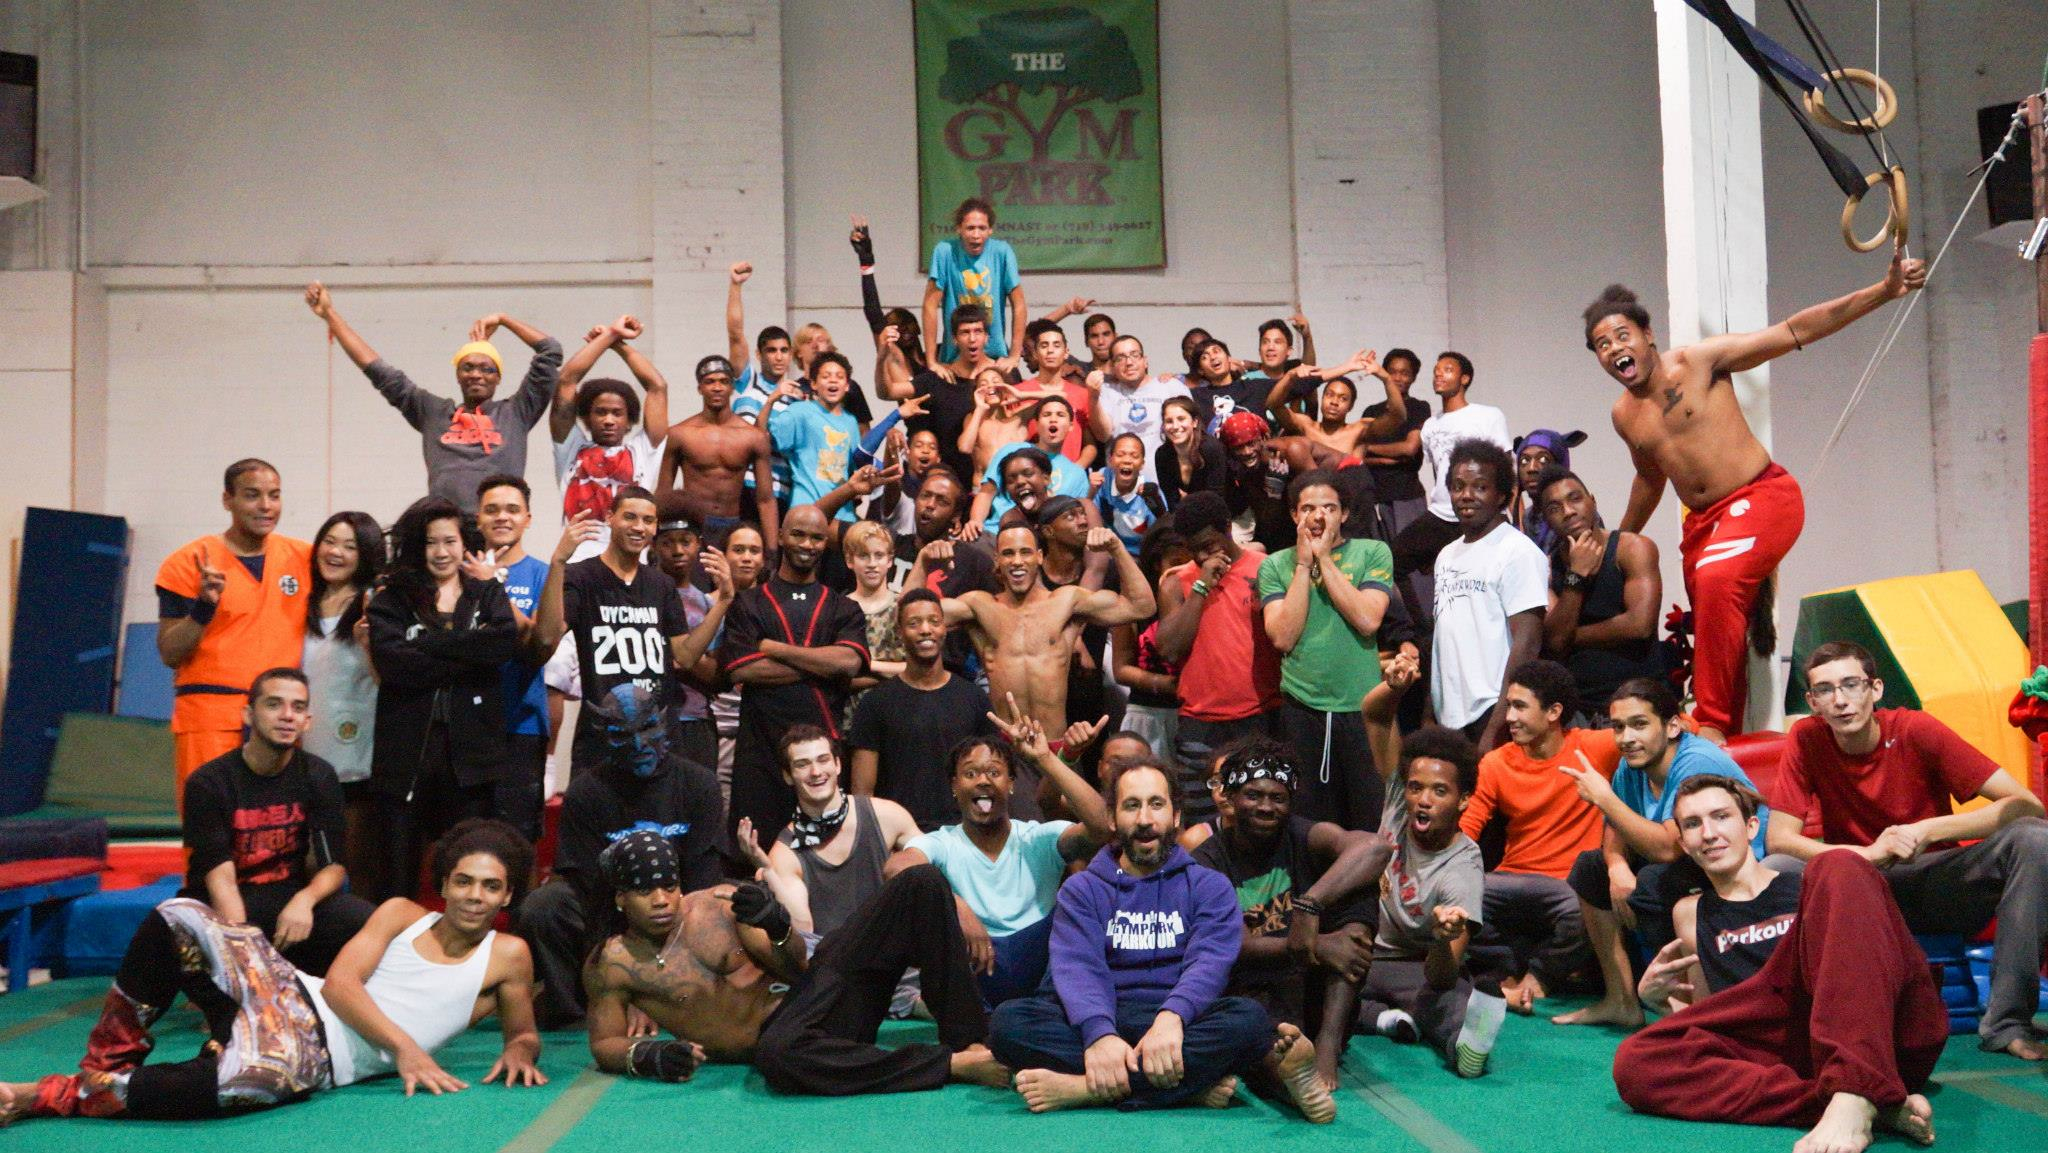 Group photo of Gym Jam participants at the Gym Park.